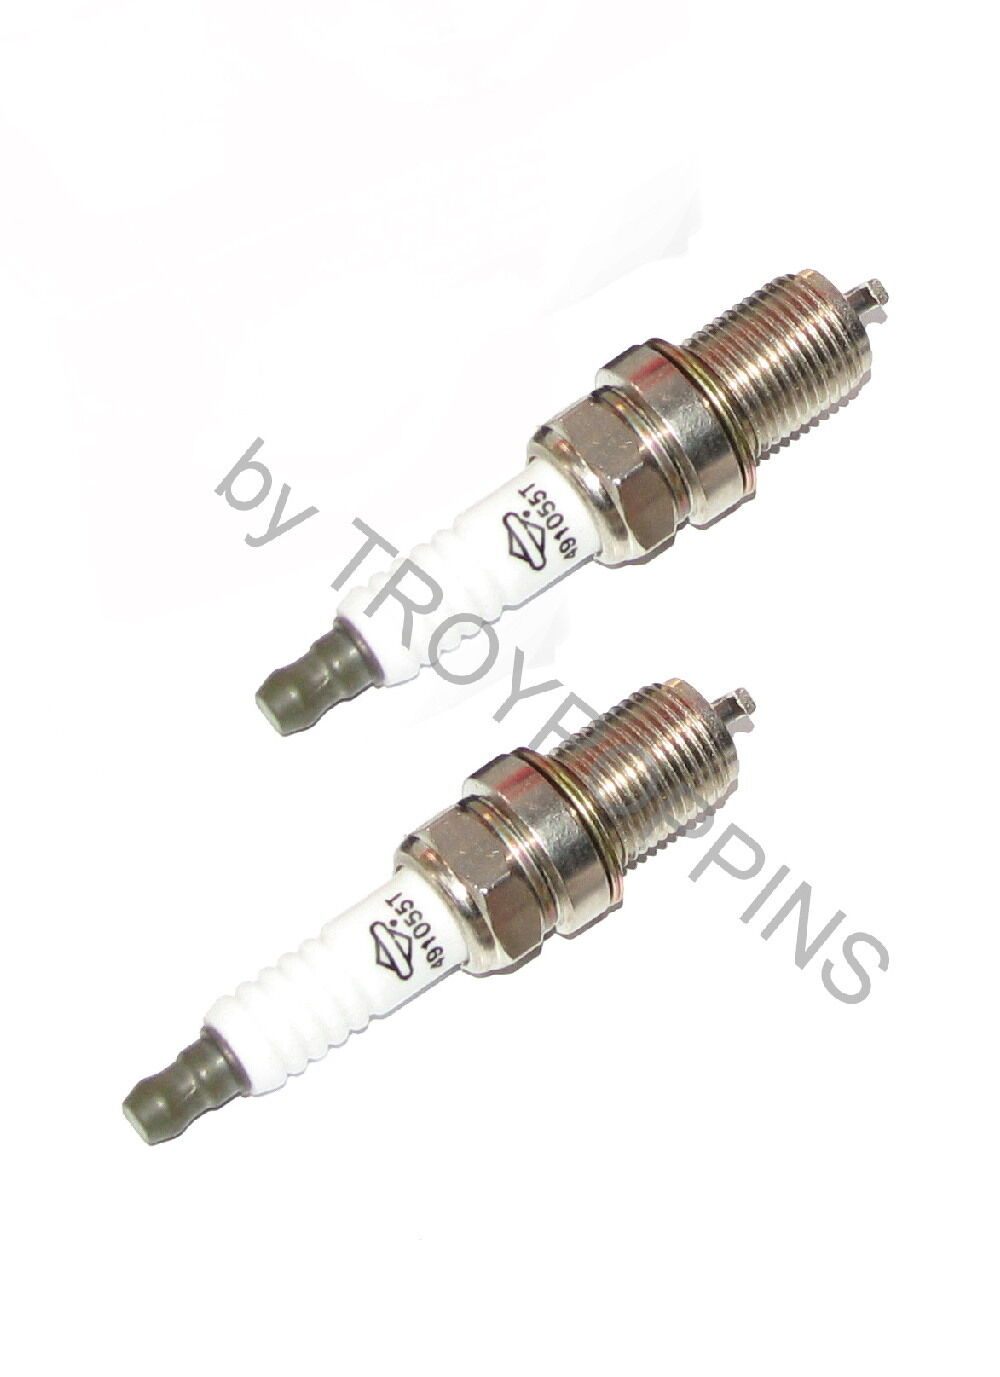 Briggs Stratton Engine Ohv Parts Vanguard V Twin 2 Oem Spark Plugs 20 Hp And Diagram 1 Of See More